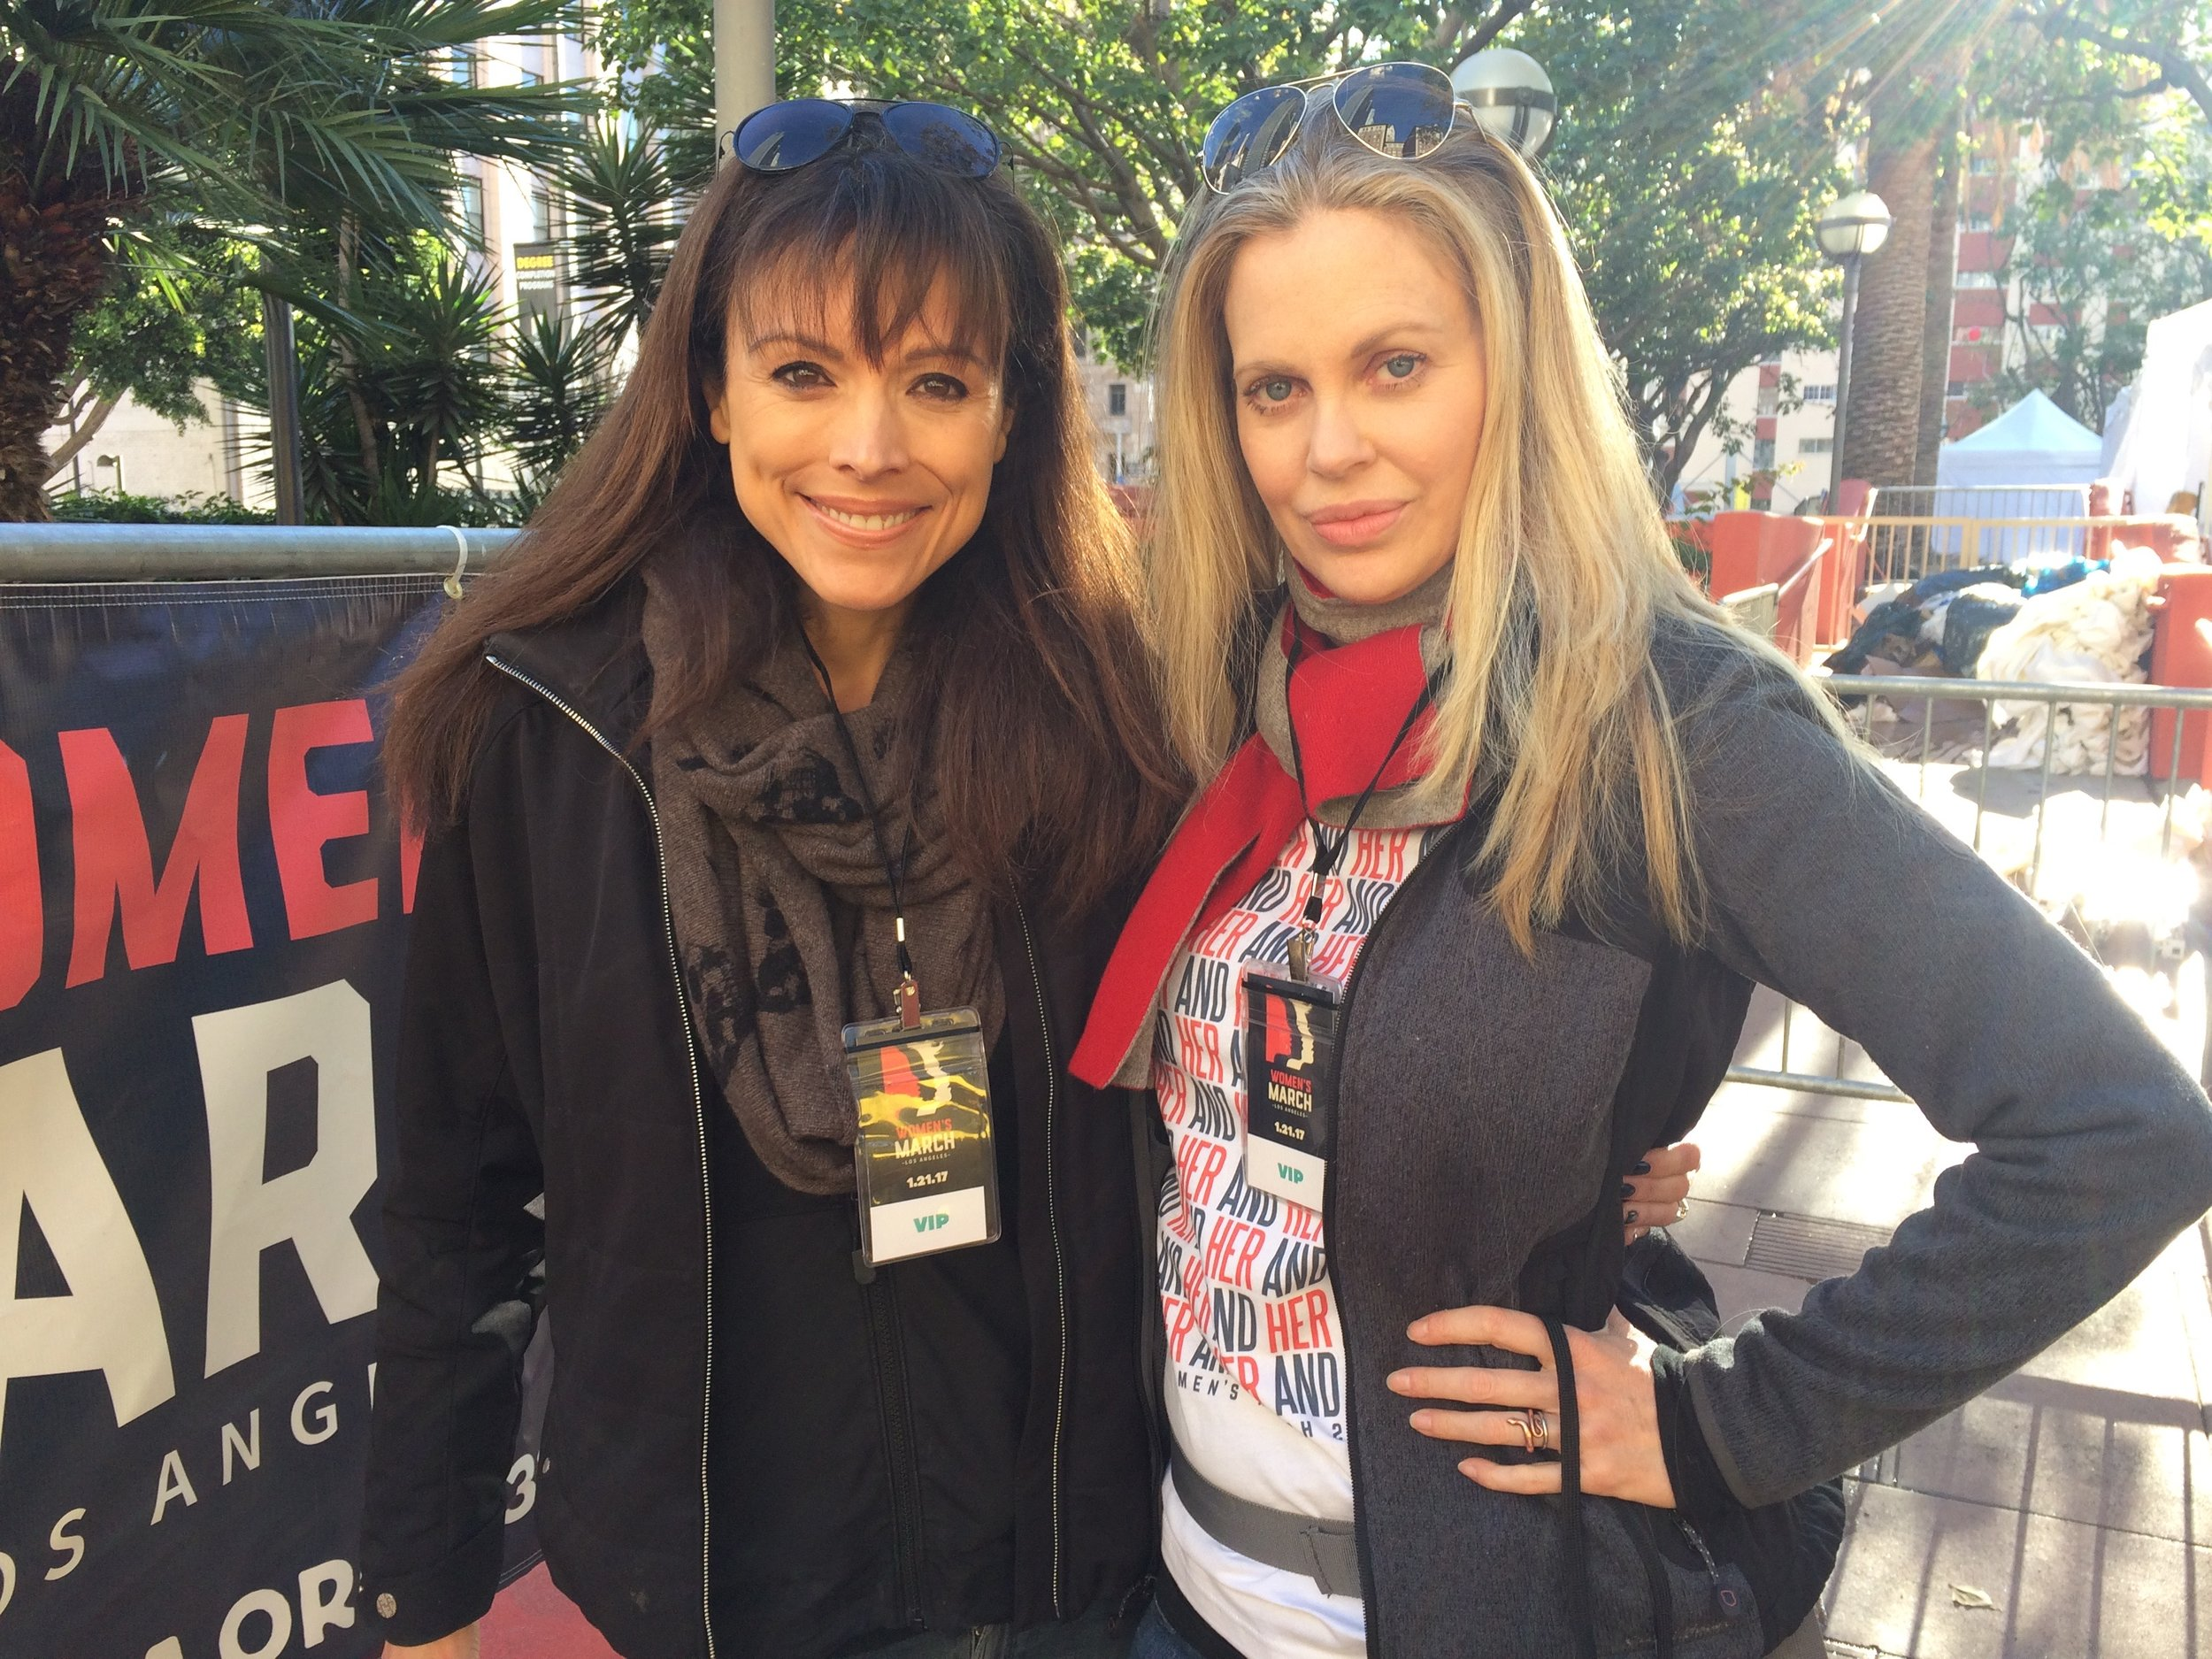 Actresses Liz Vassey and Kristin Bauer van Straten, proud and ready to march in Pershing Square. (Photo by Loud Owl)